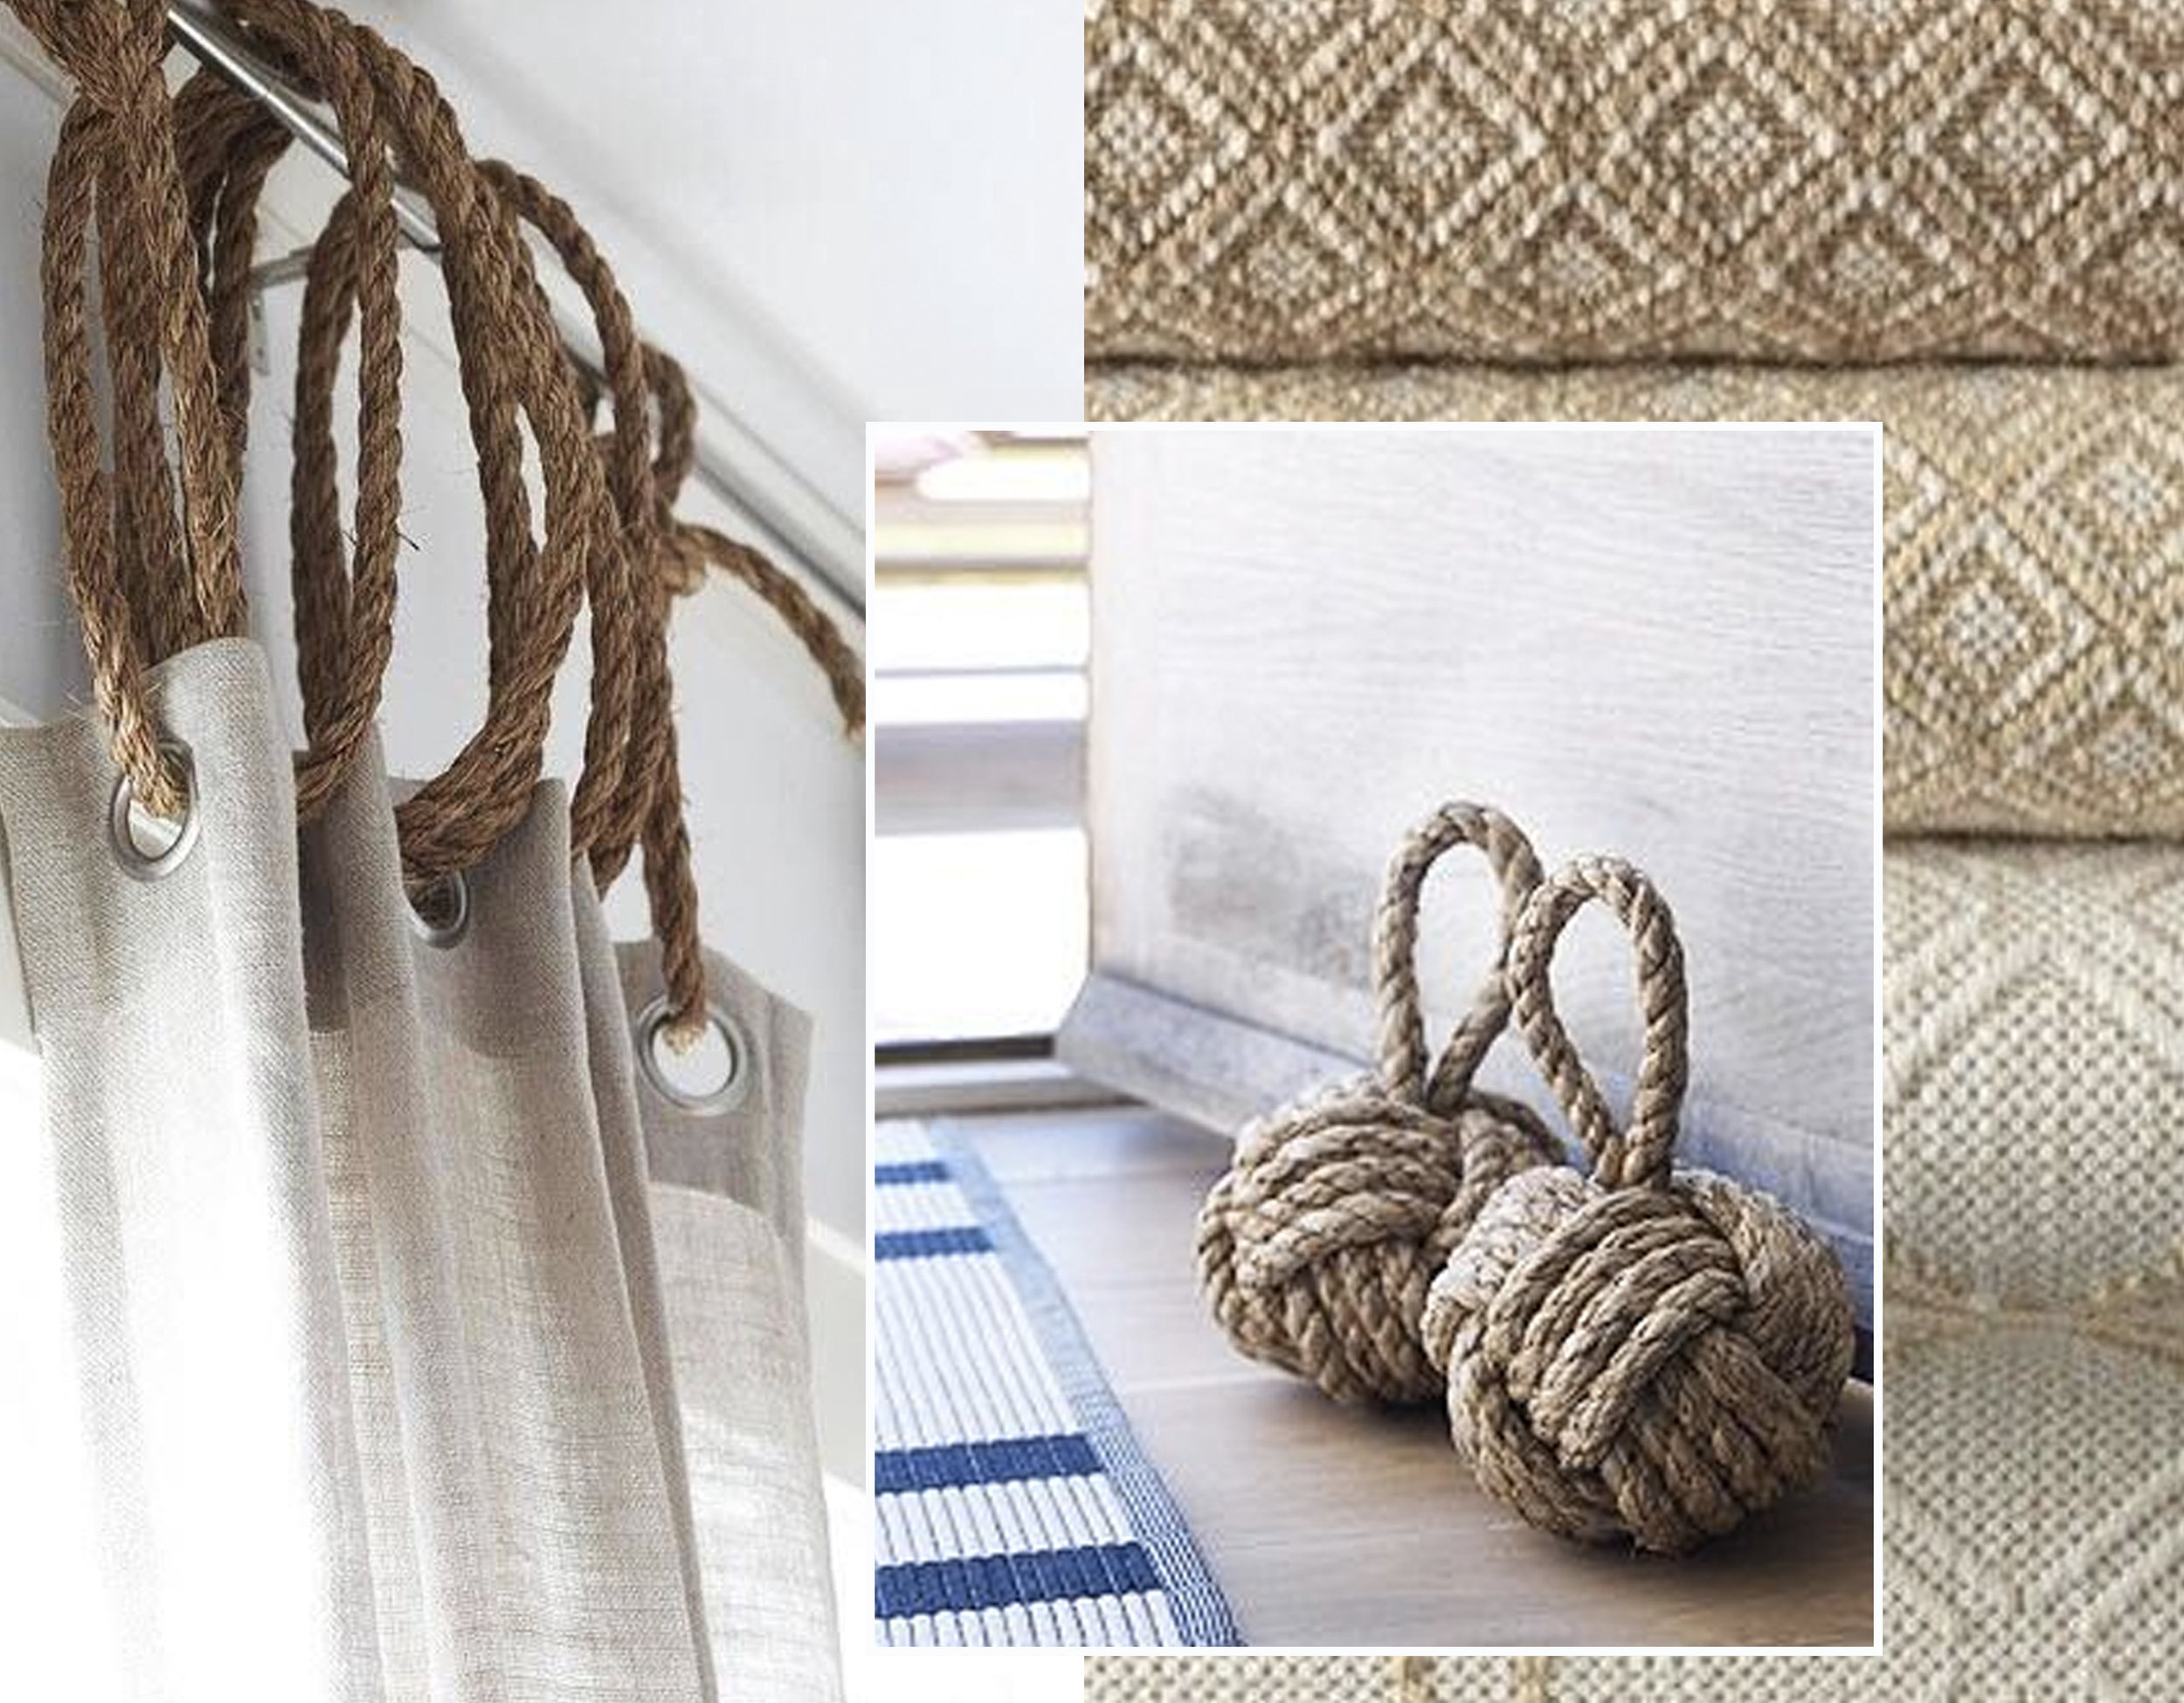 curtain idea and door stopper via  Rough Luxe Lifestyle  - rugs via  It's a Colorful Life